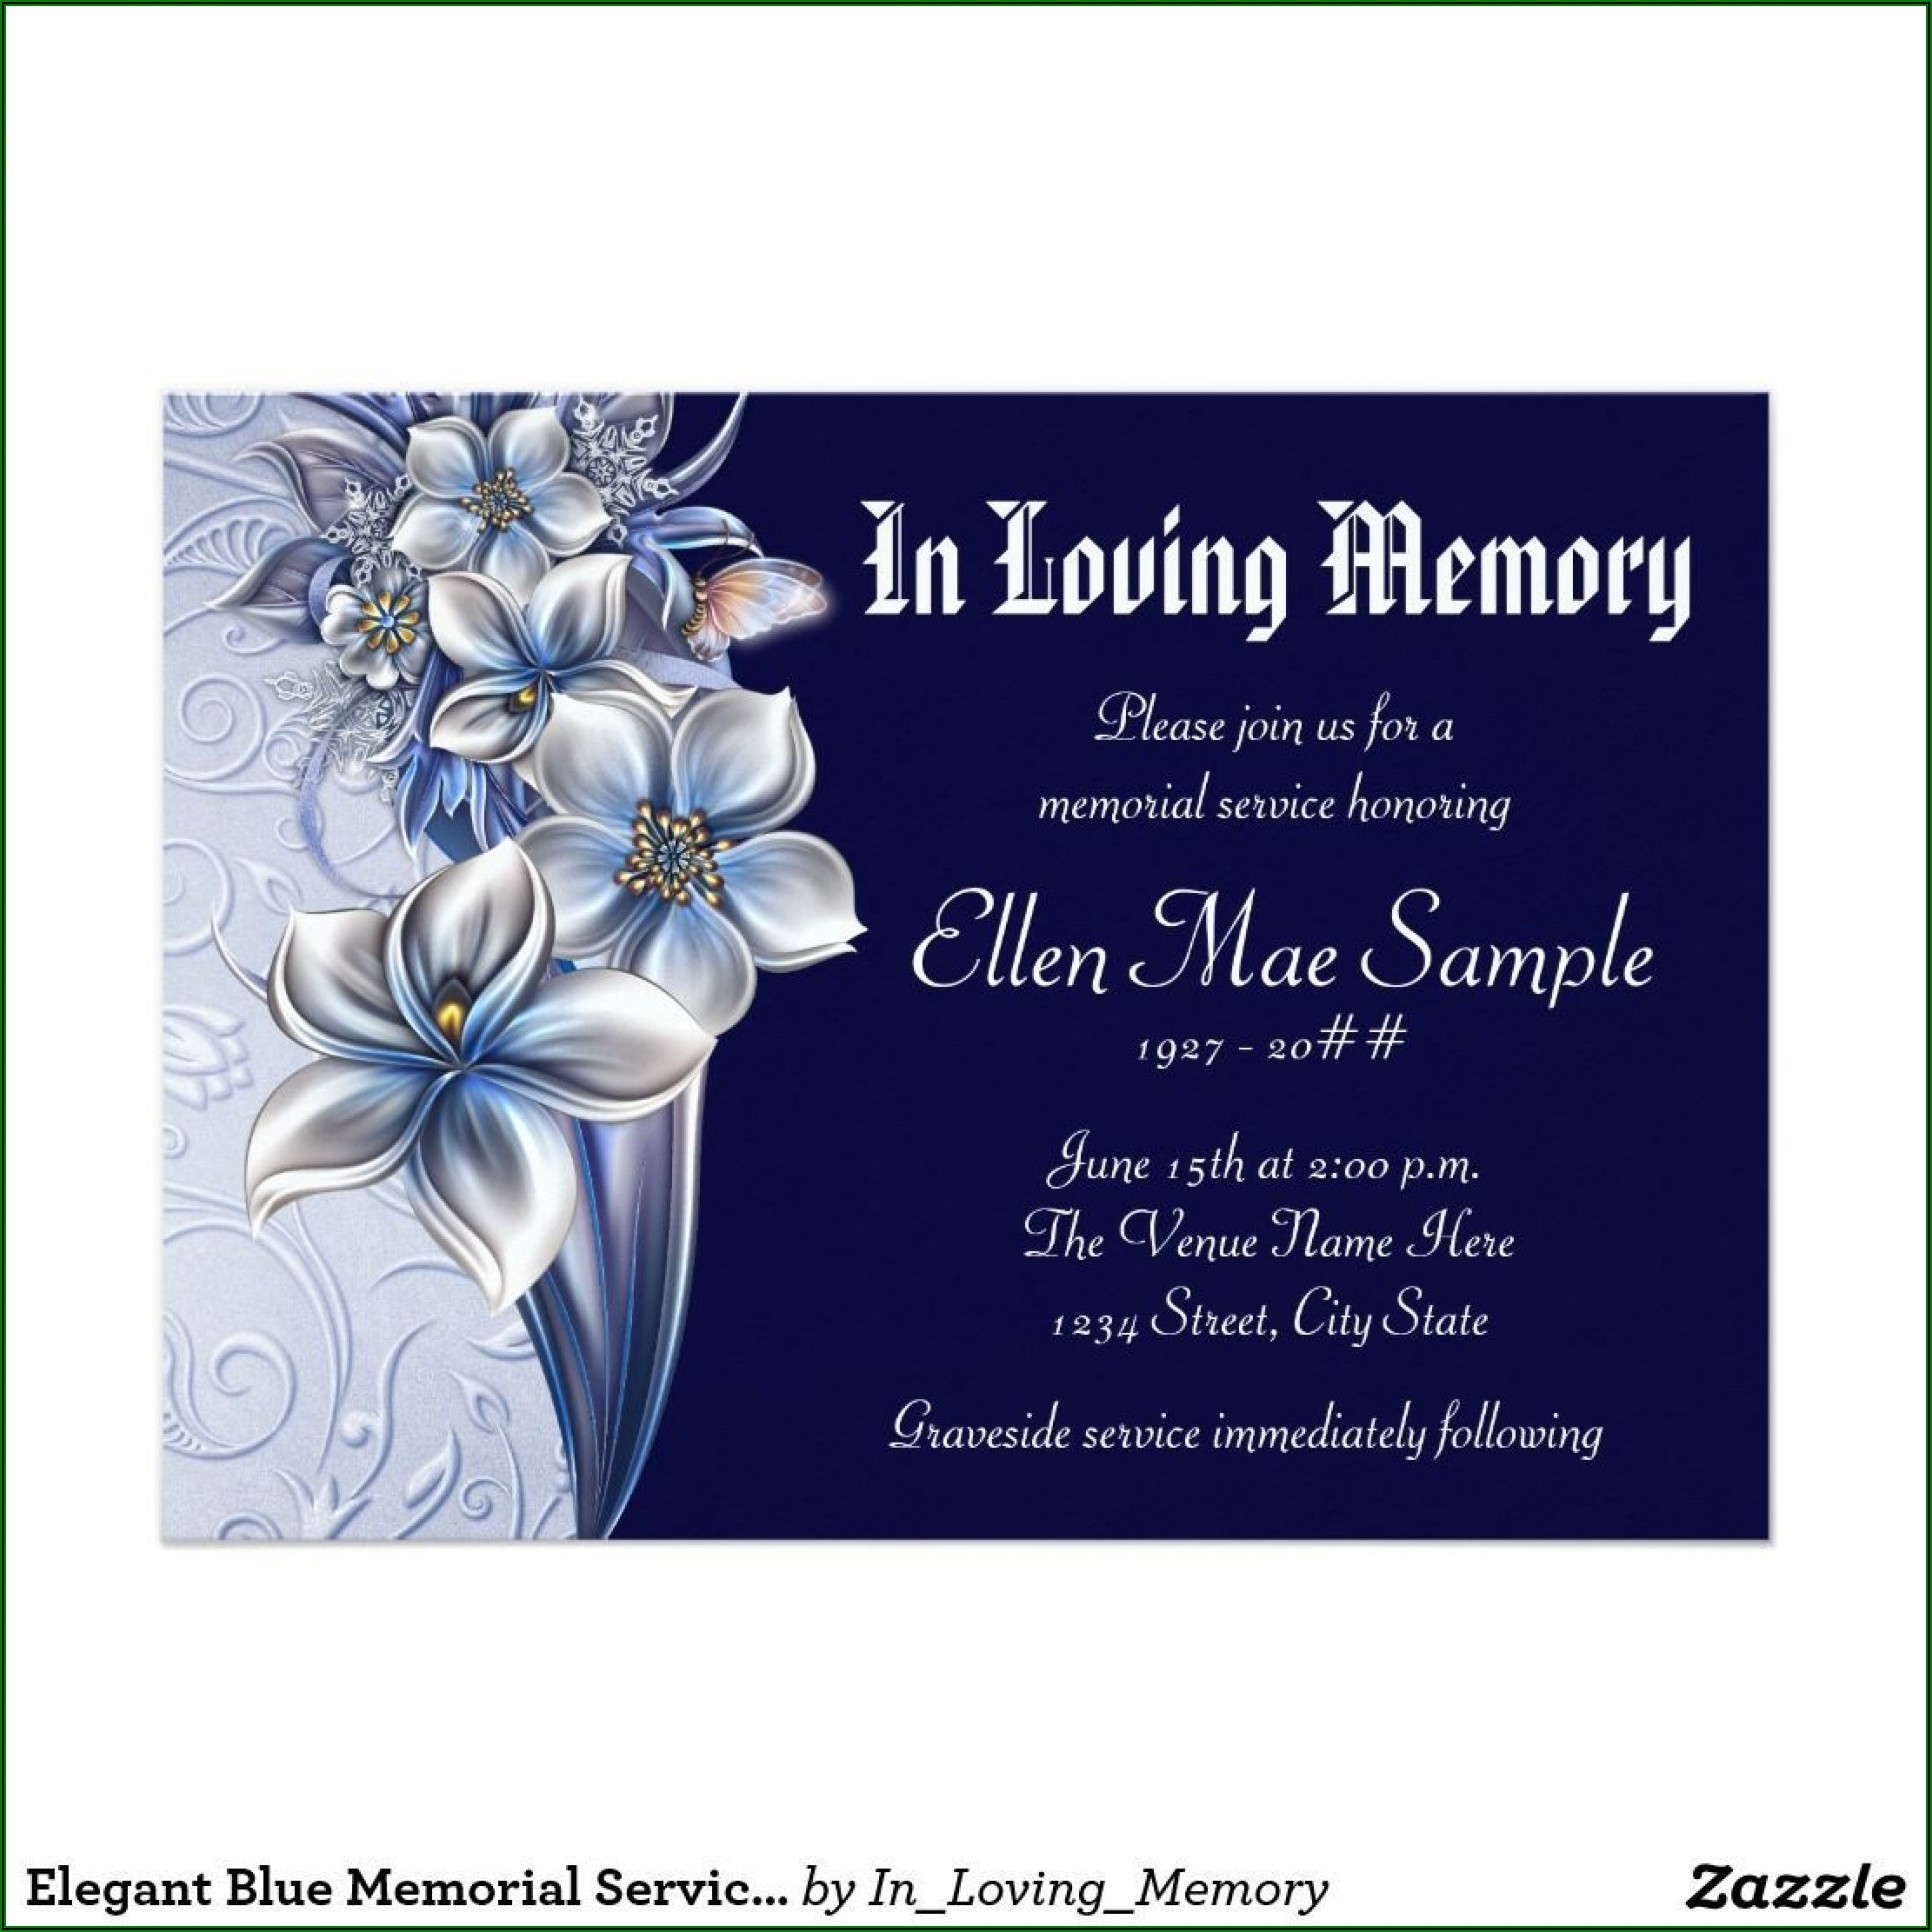 Funeral Services Announcement Samples